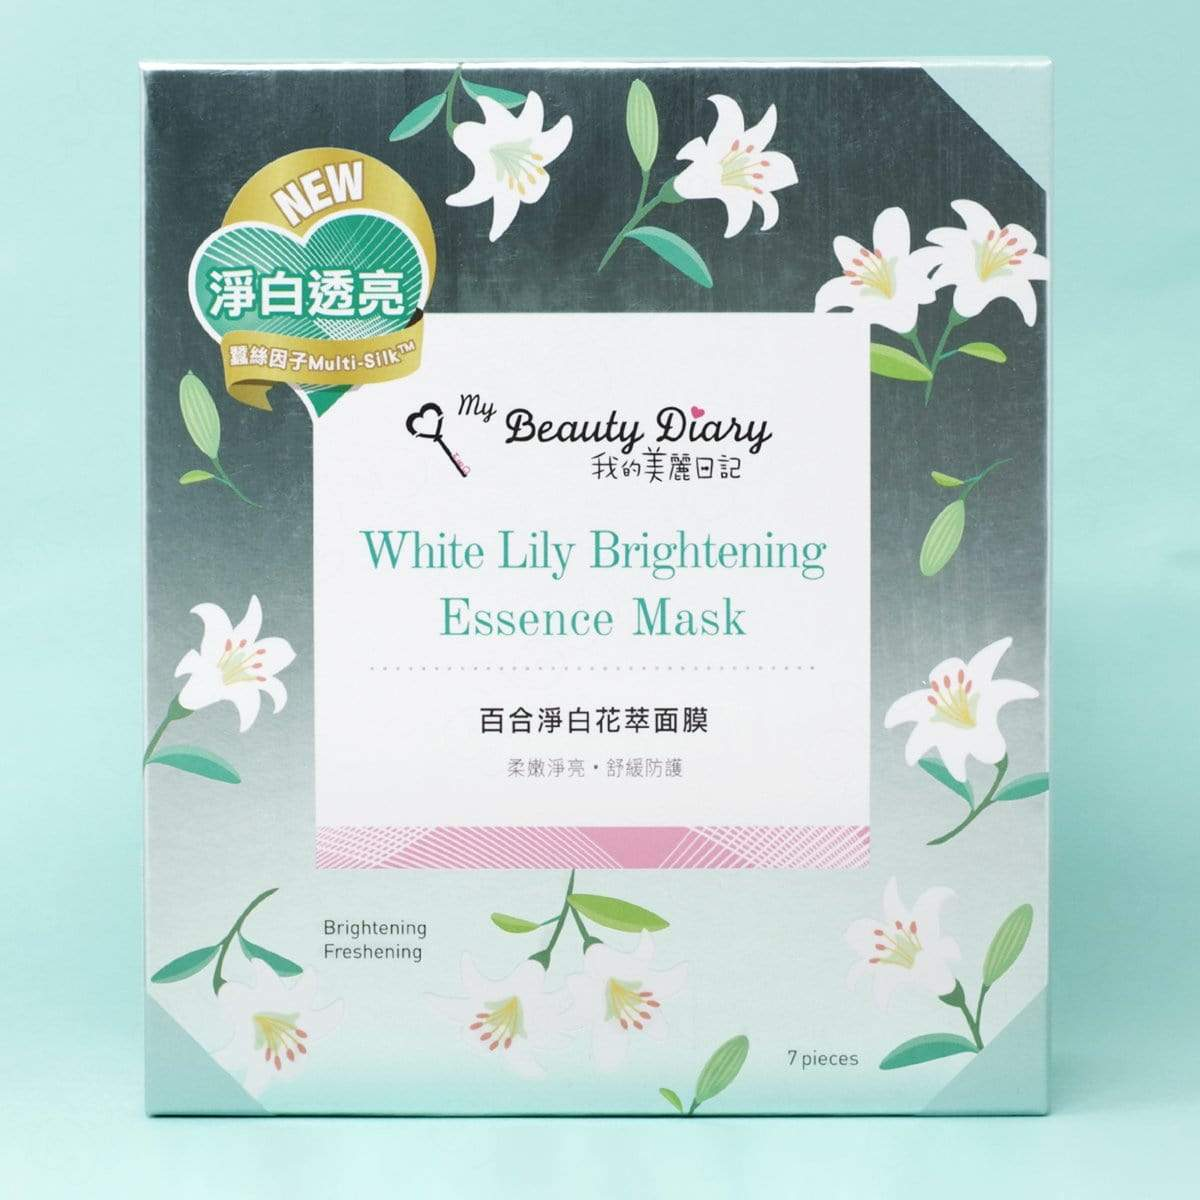 My Beauty Diary White Lily Brightening Essence Sheet Mask